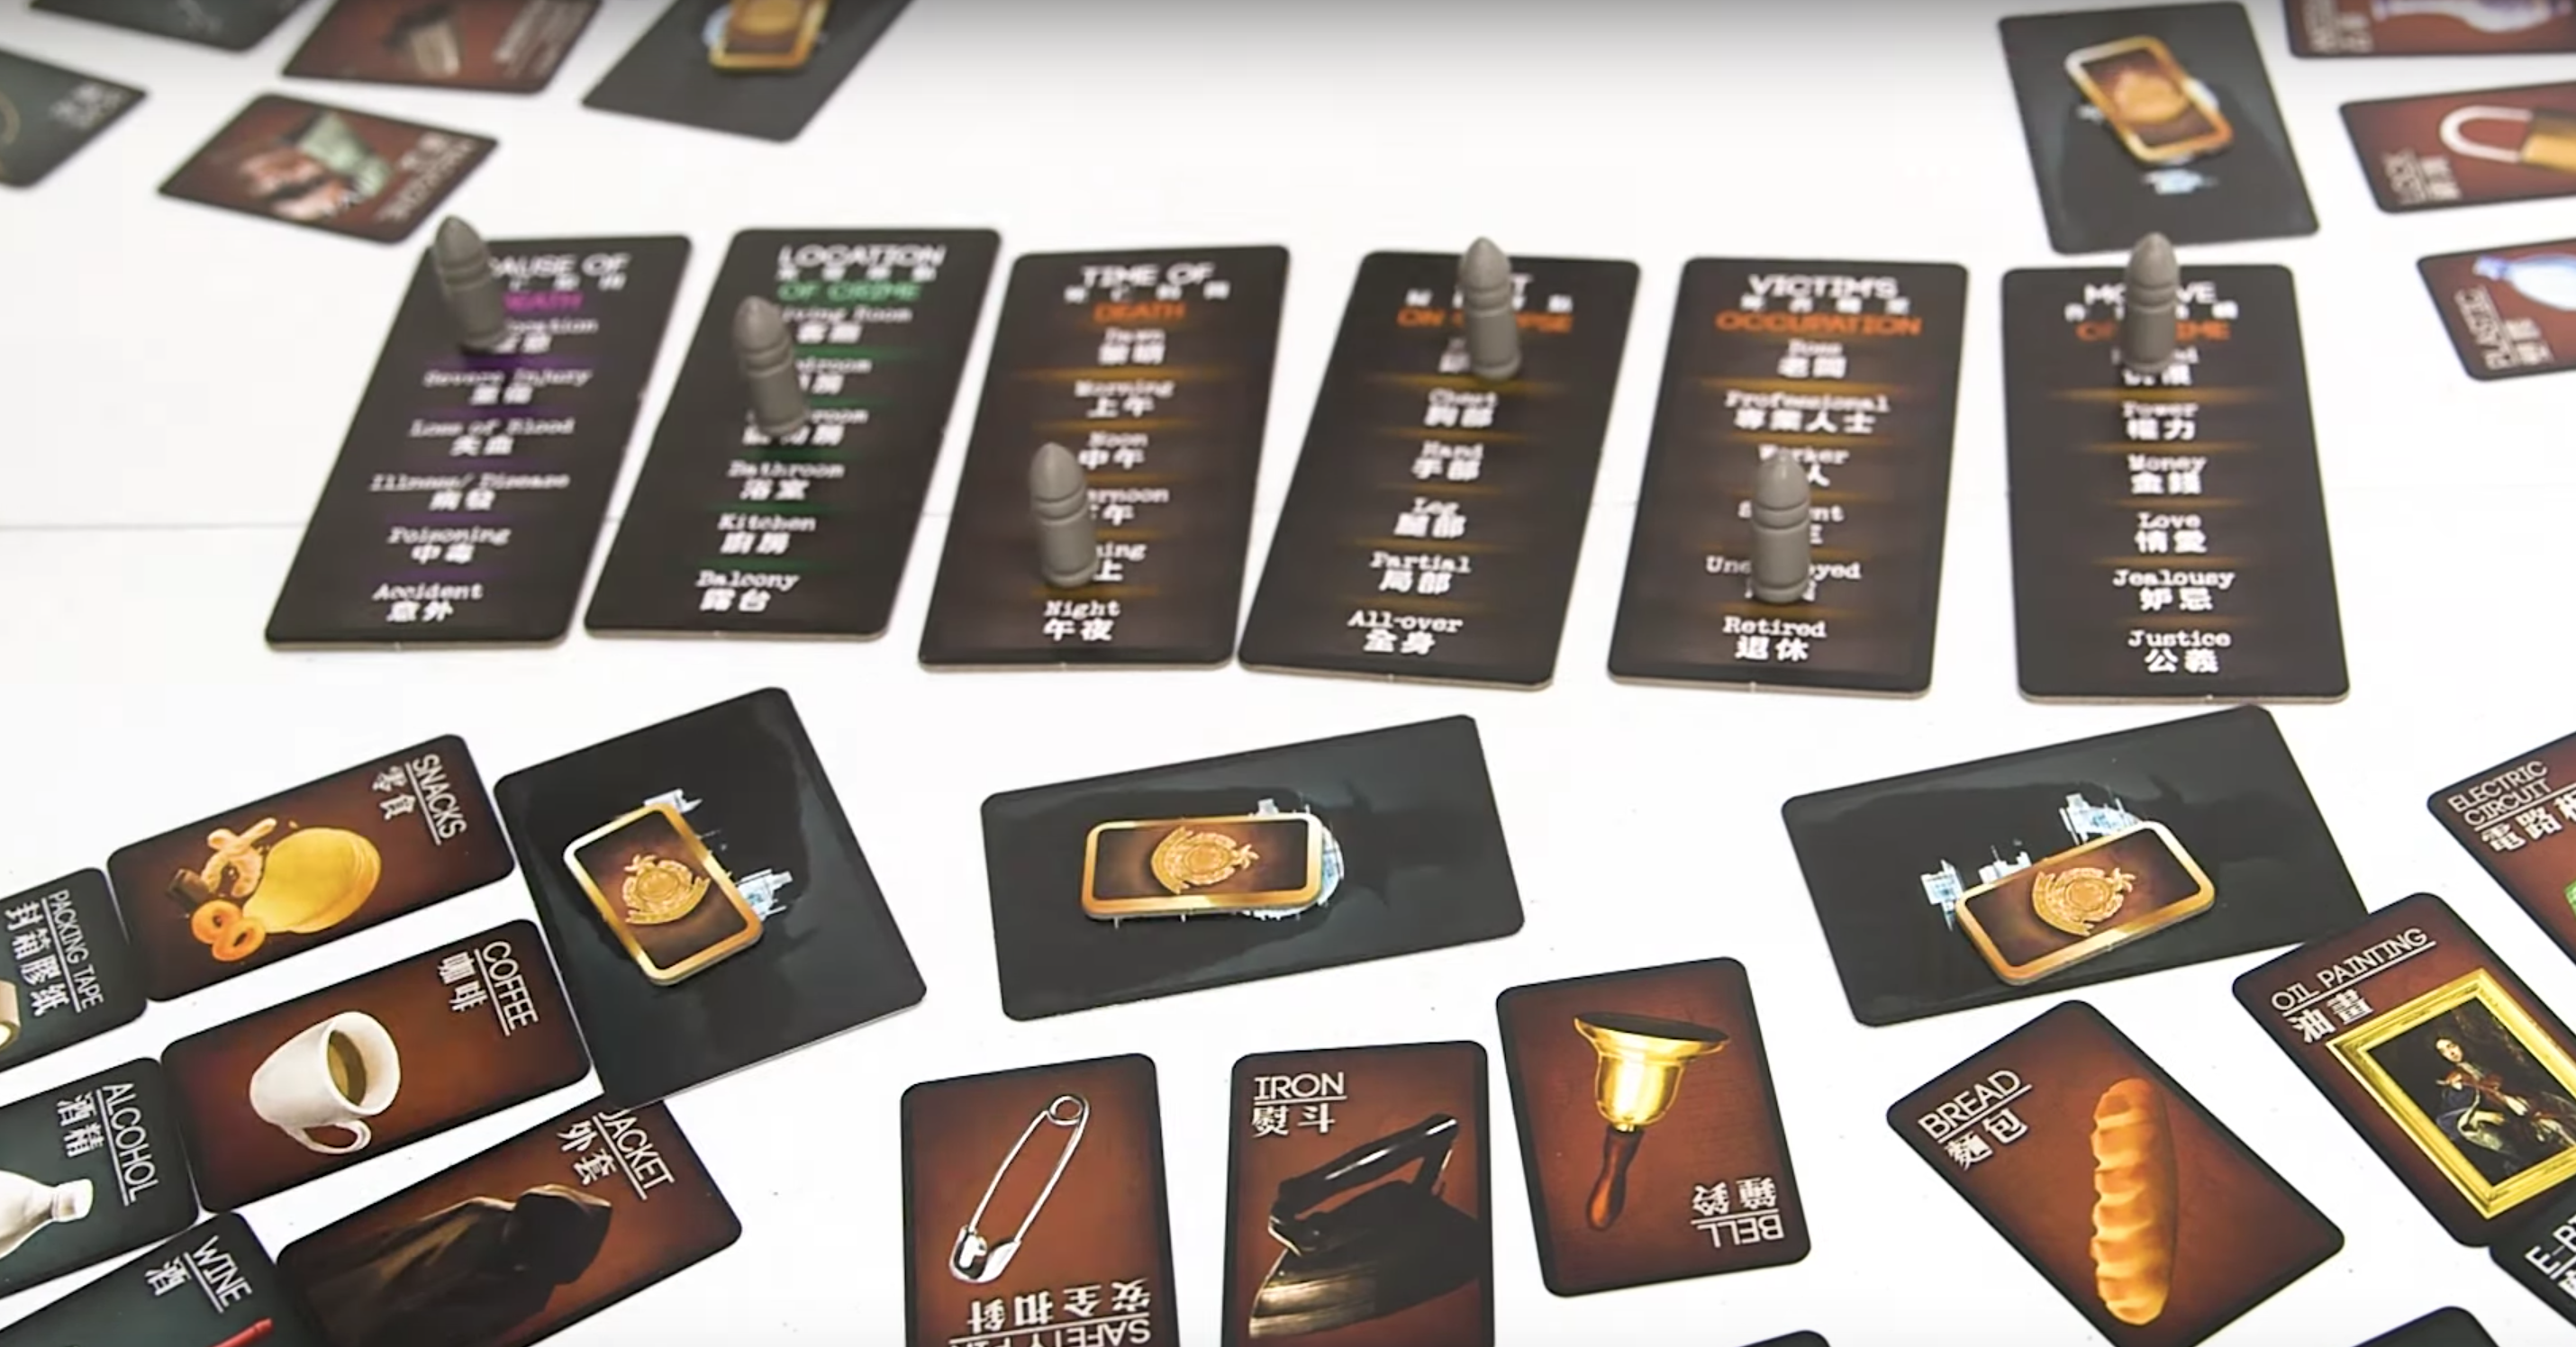 Deception: Murder in Hong Kong - cards on a table